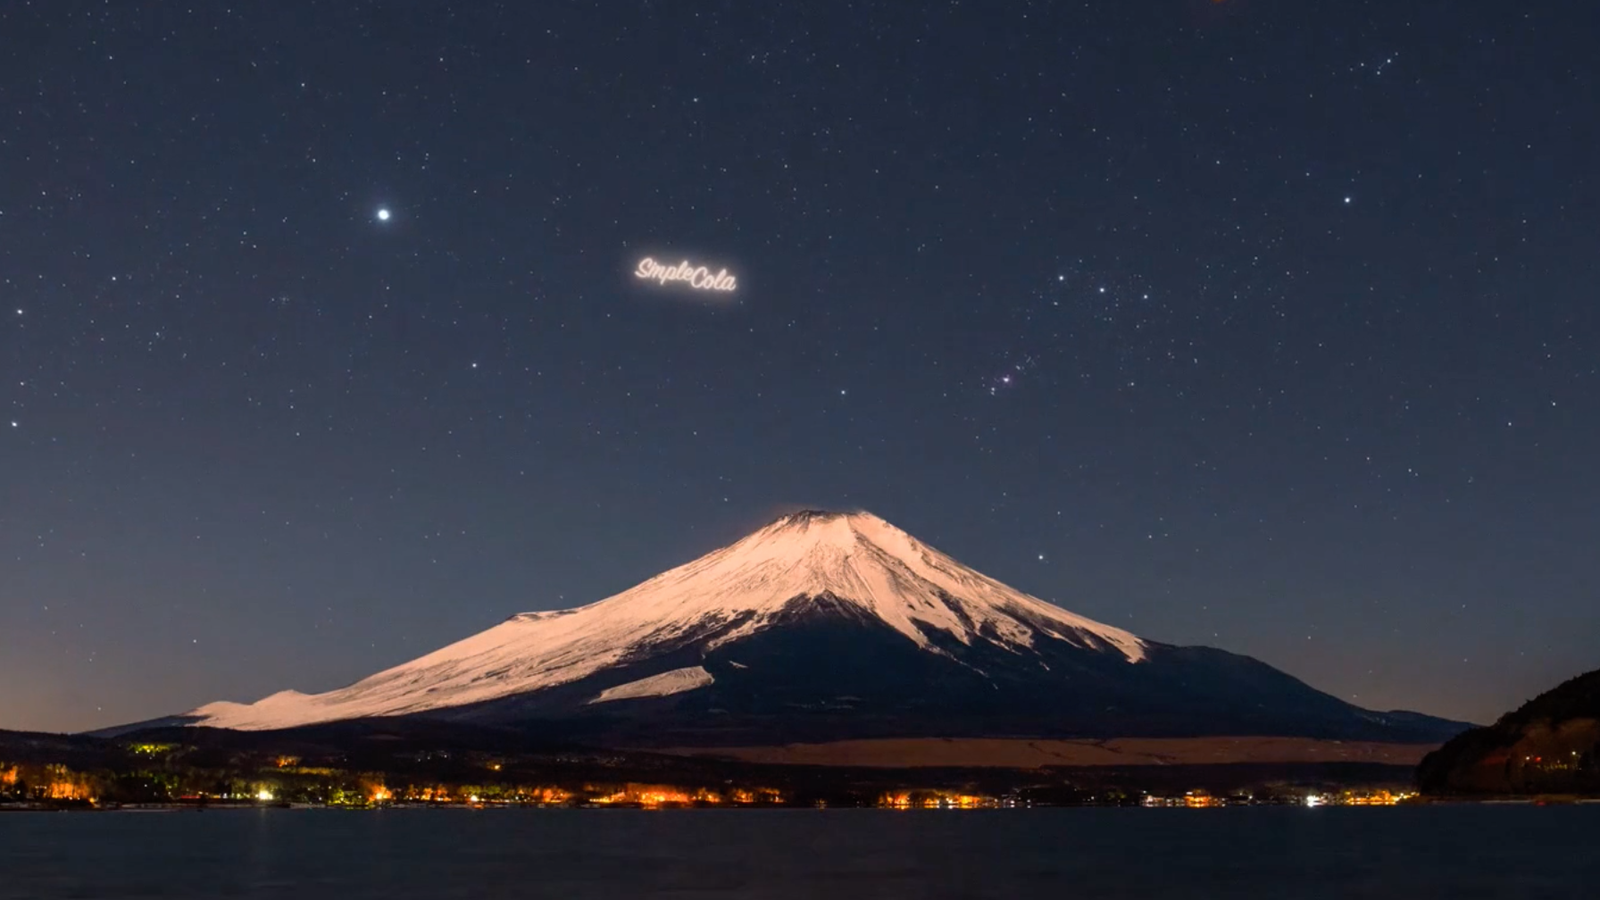 Pepsi Mercifully Spares Humanity From Its Space Billboards—for Now